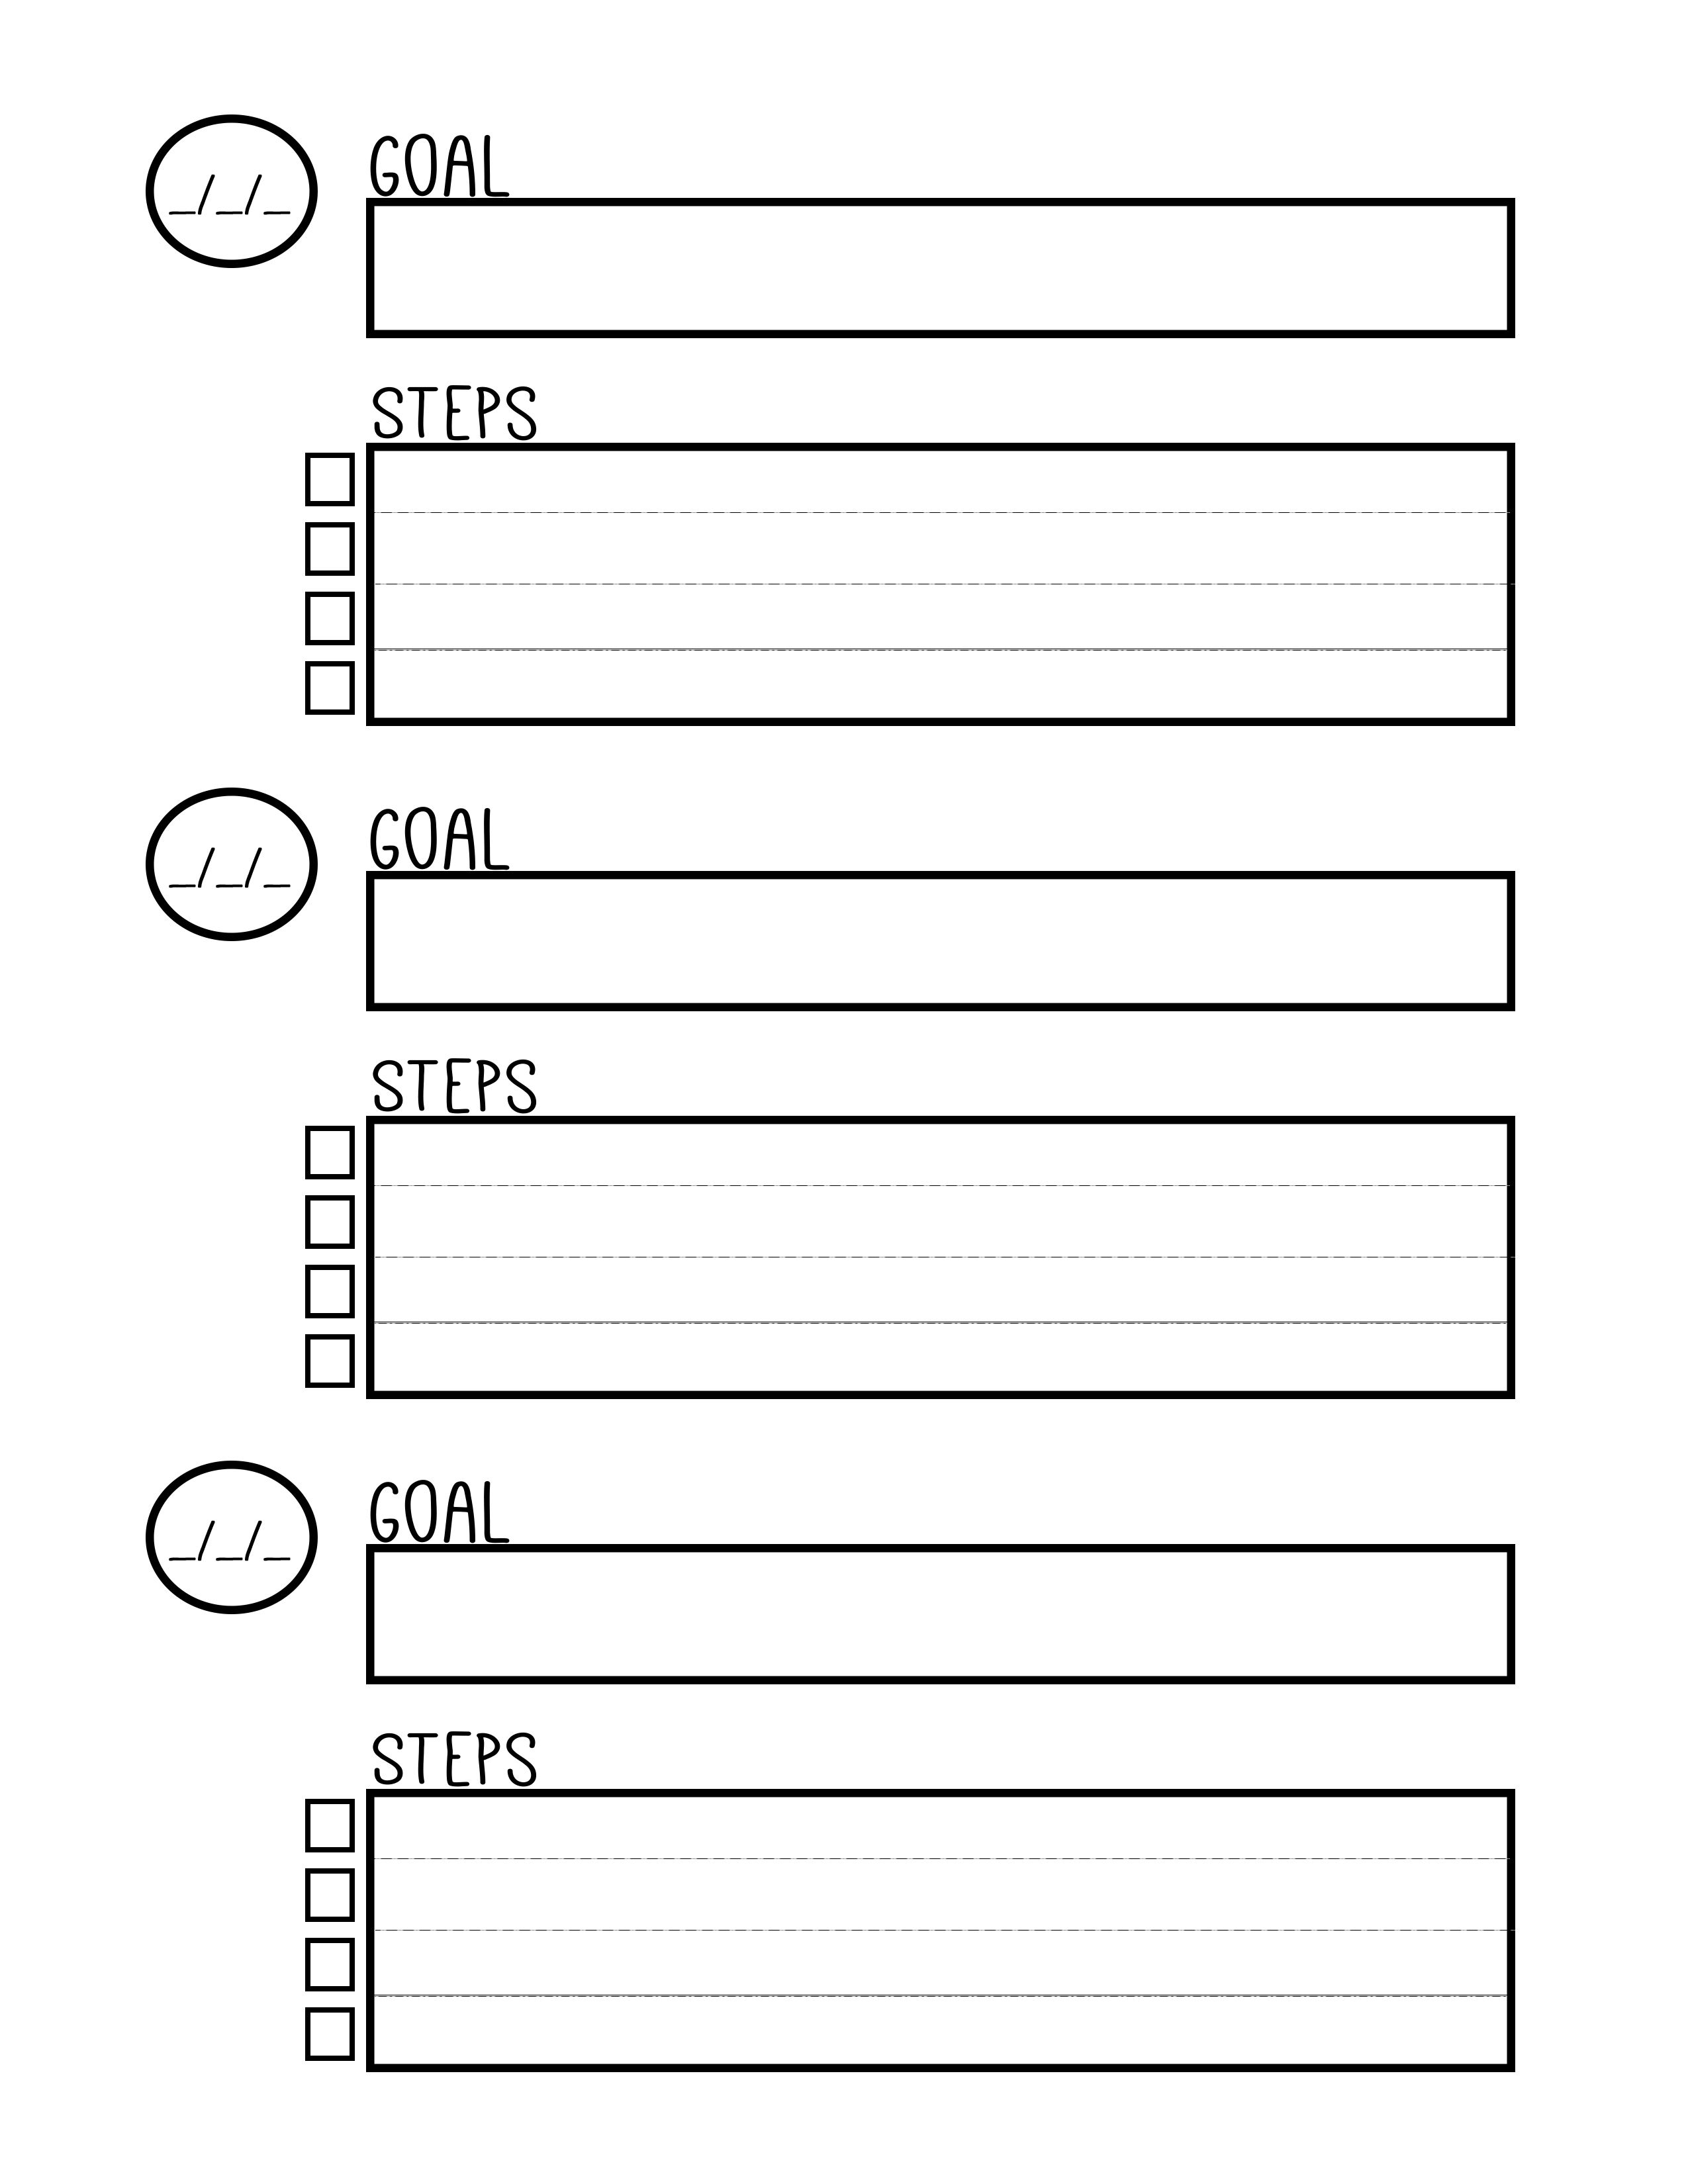 Worksheets Printable Goal Setting Worksheet free printable goal setting planner worksheet planners bullet worksheet